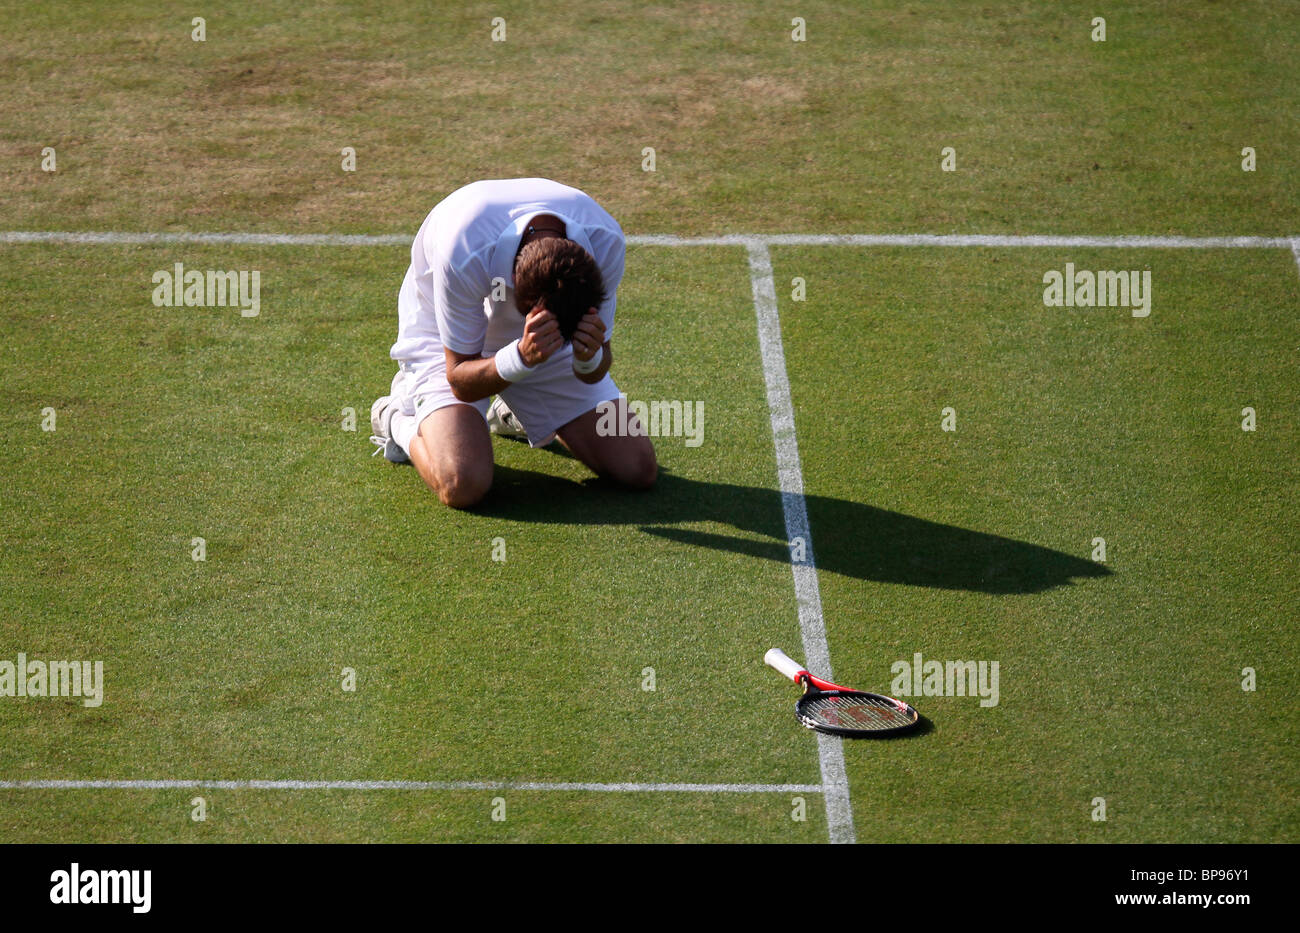 A devastated Nicolas Mahut of France kneels on the ground after his defeat at Wimbledon 2010, - Stock Image